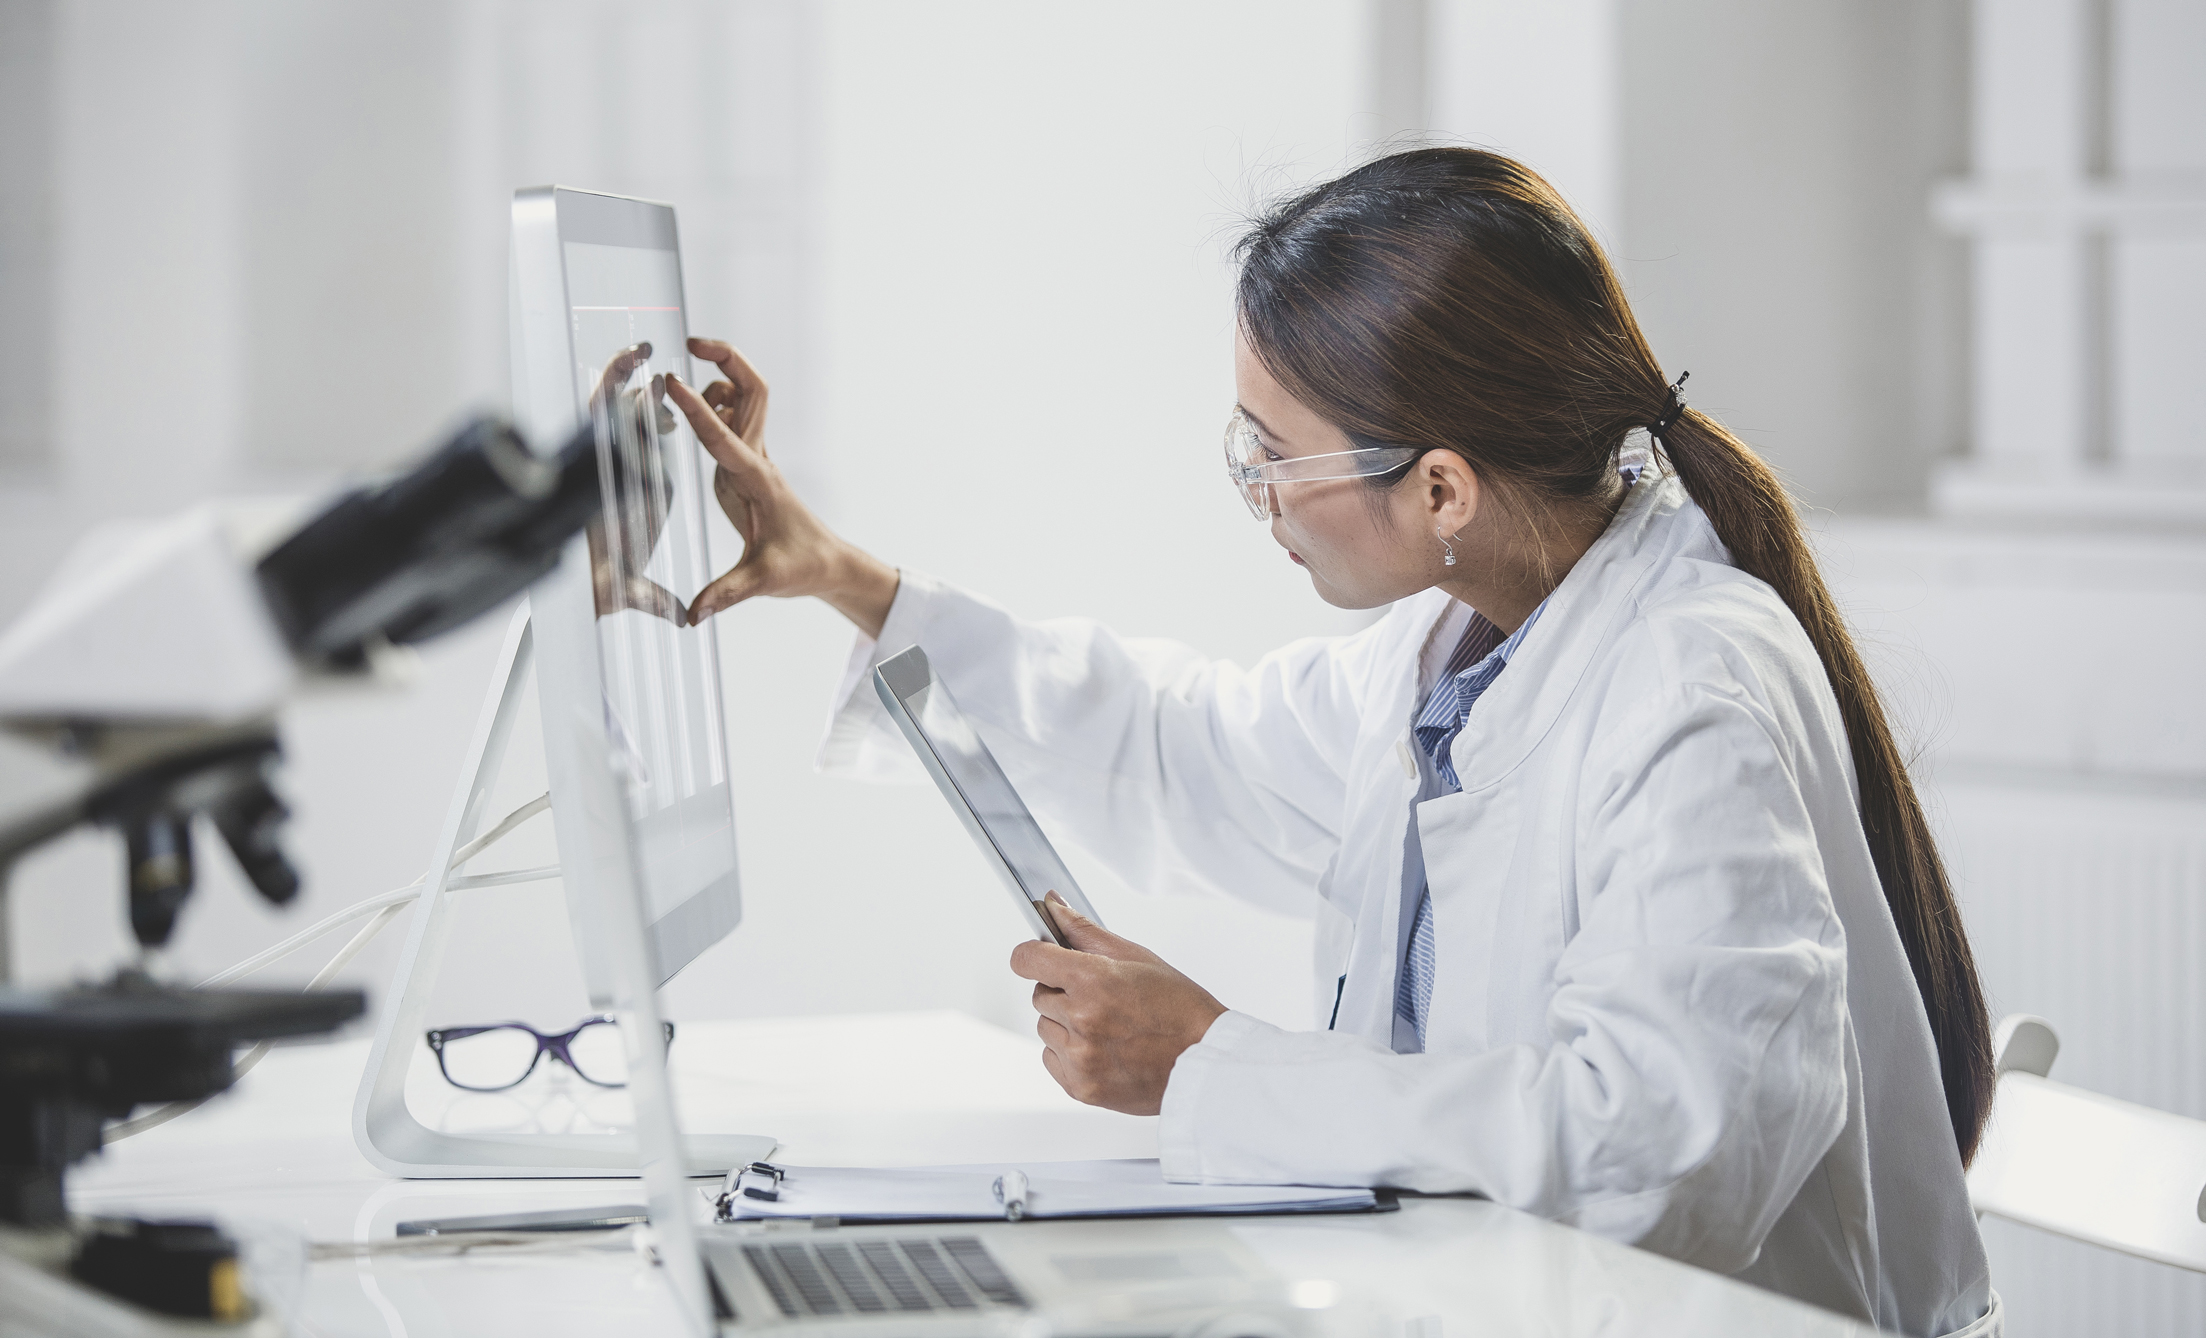 Scientist in lab looking at computer screen